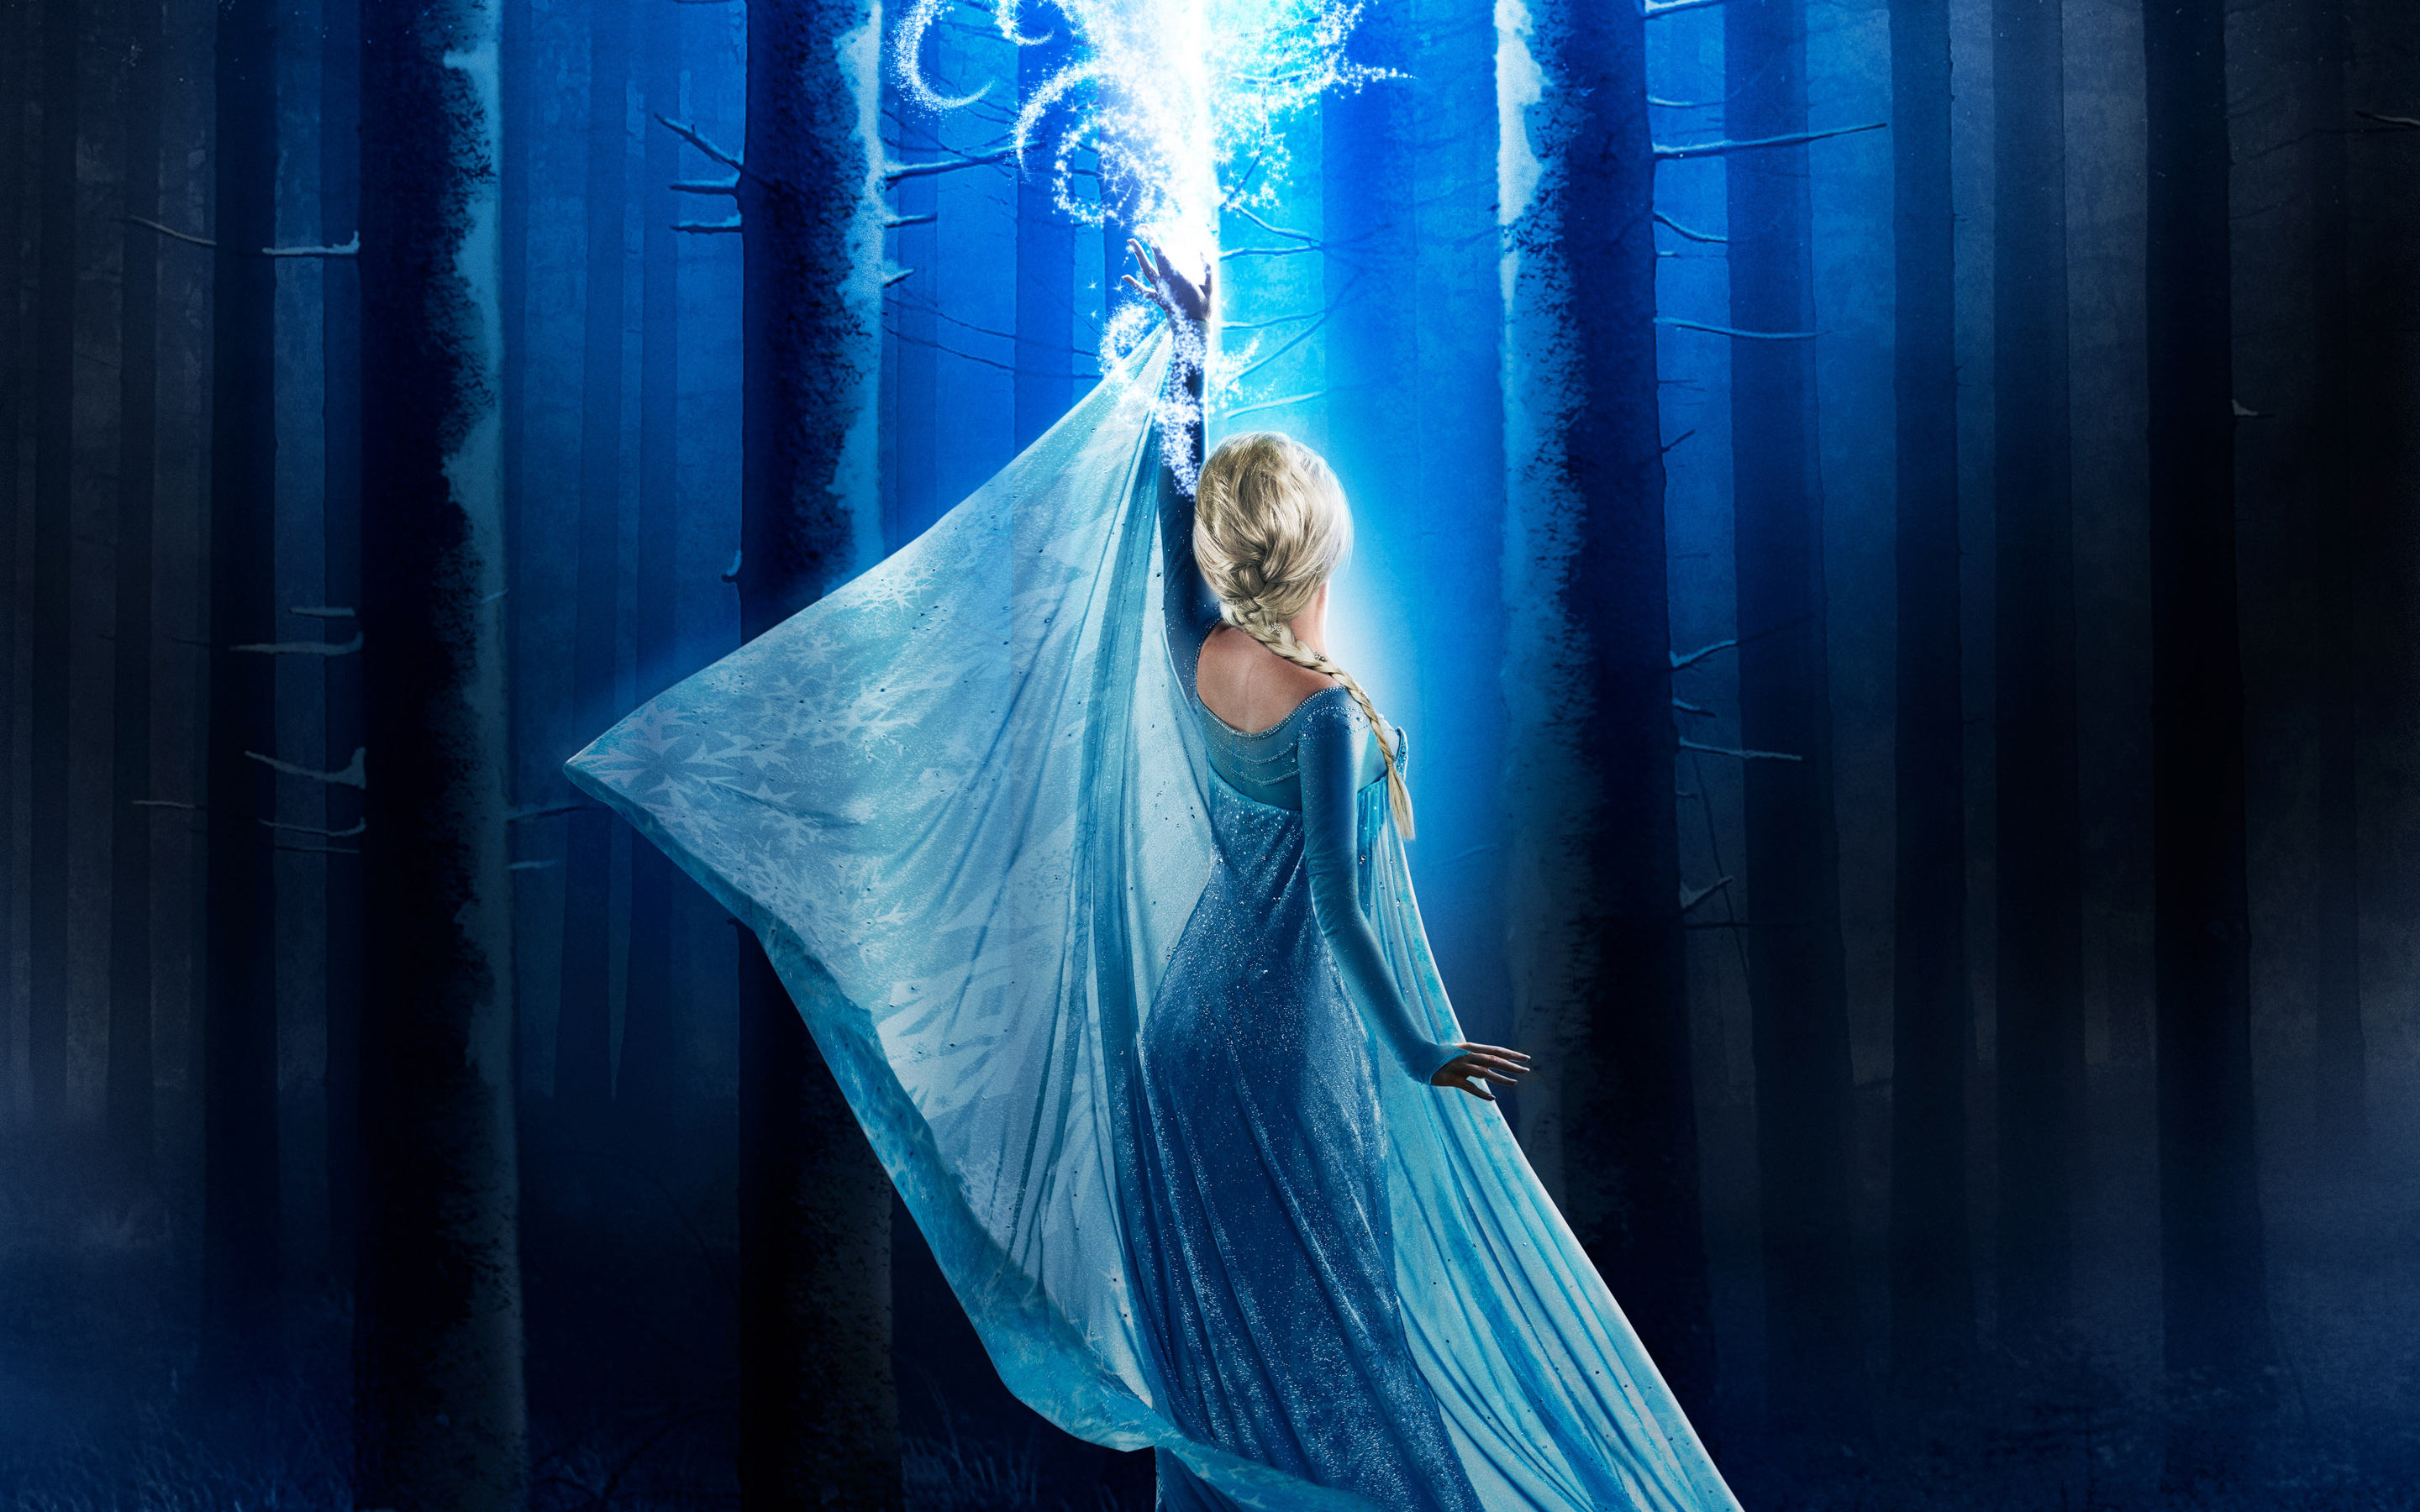 Elsa in Once Upon a Time Season 4 wallpaper